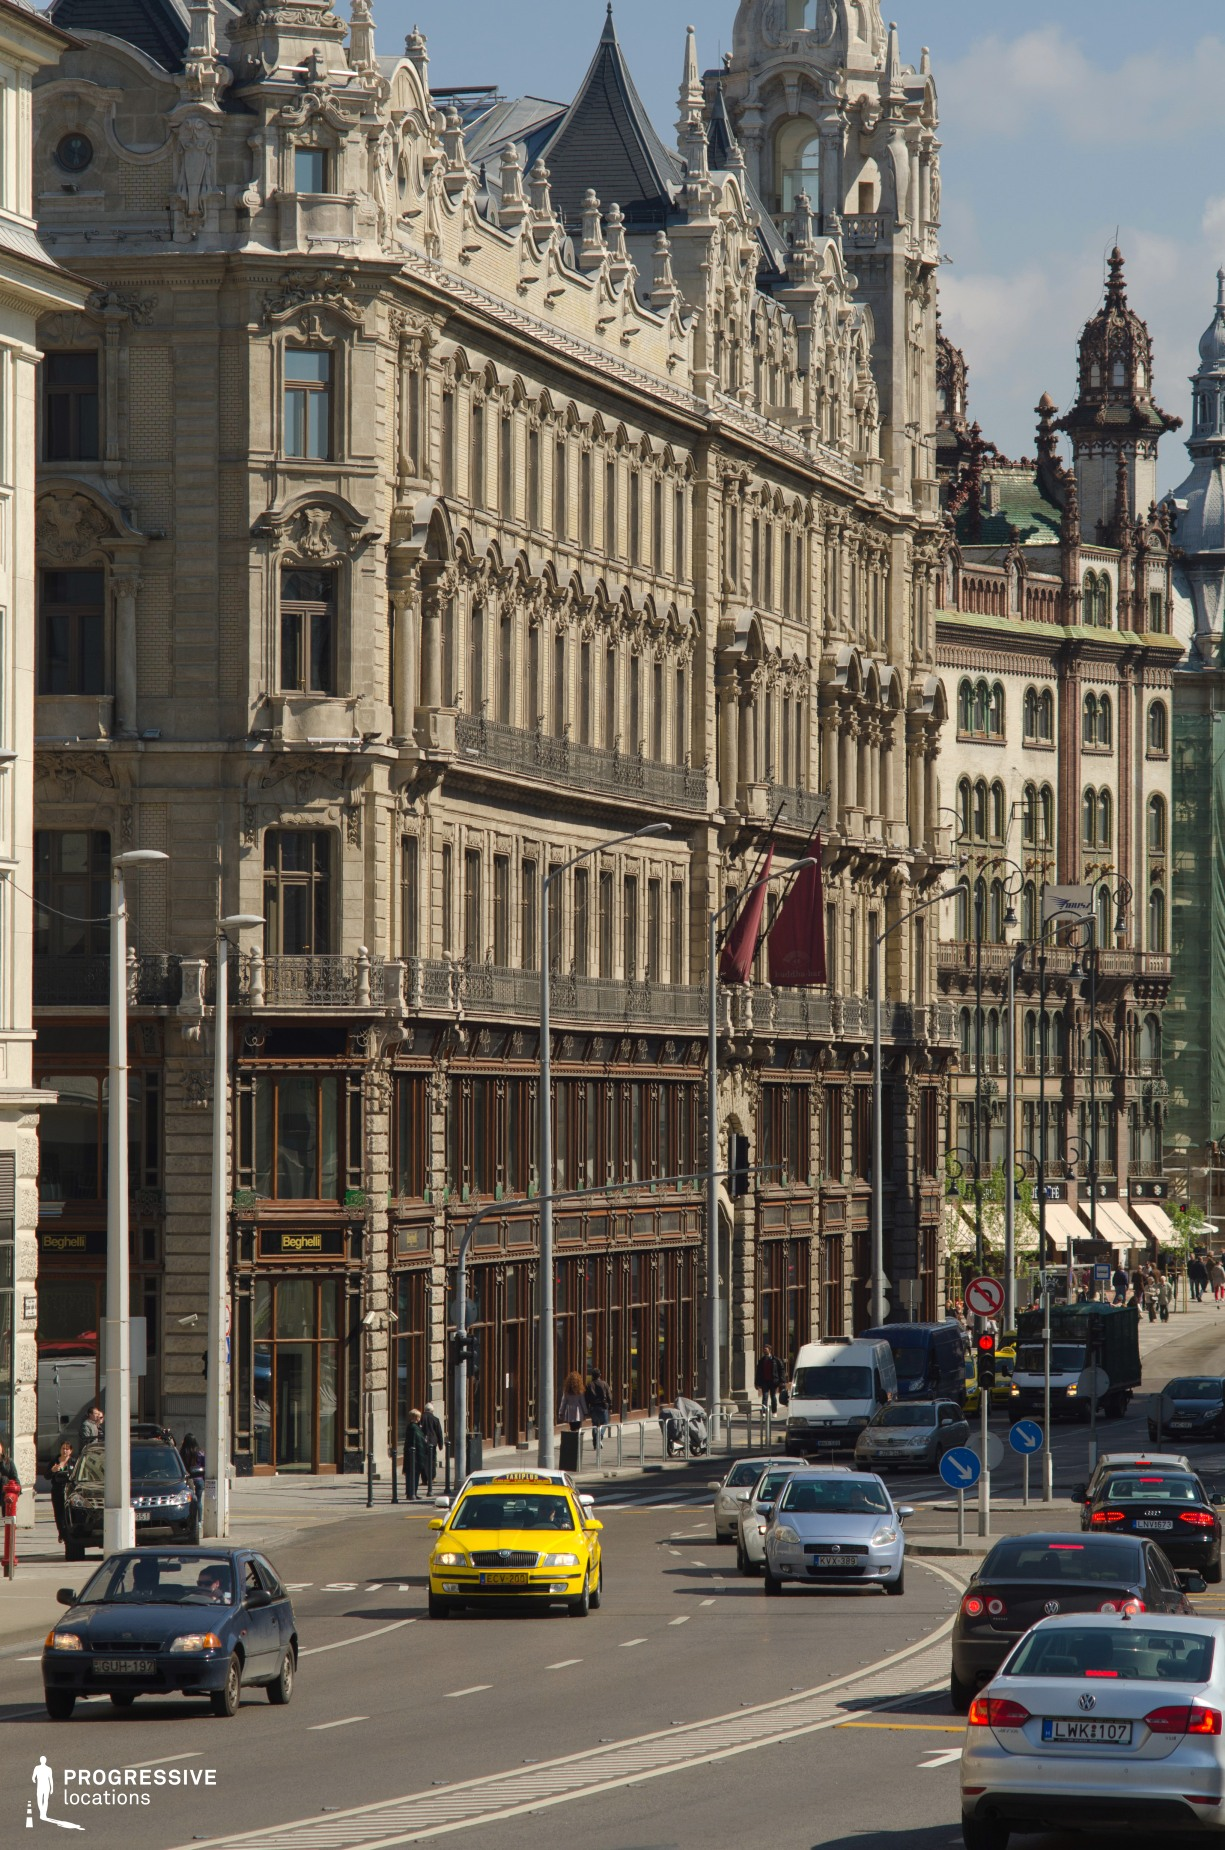 Locations in Budapest: Wide City Street %26 Taxi